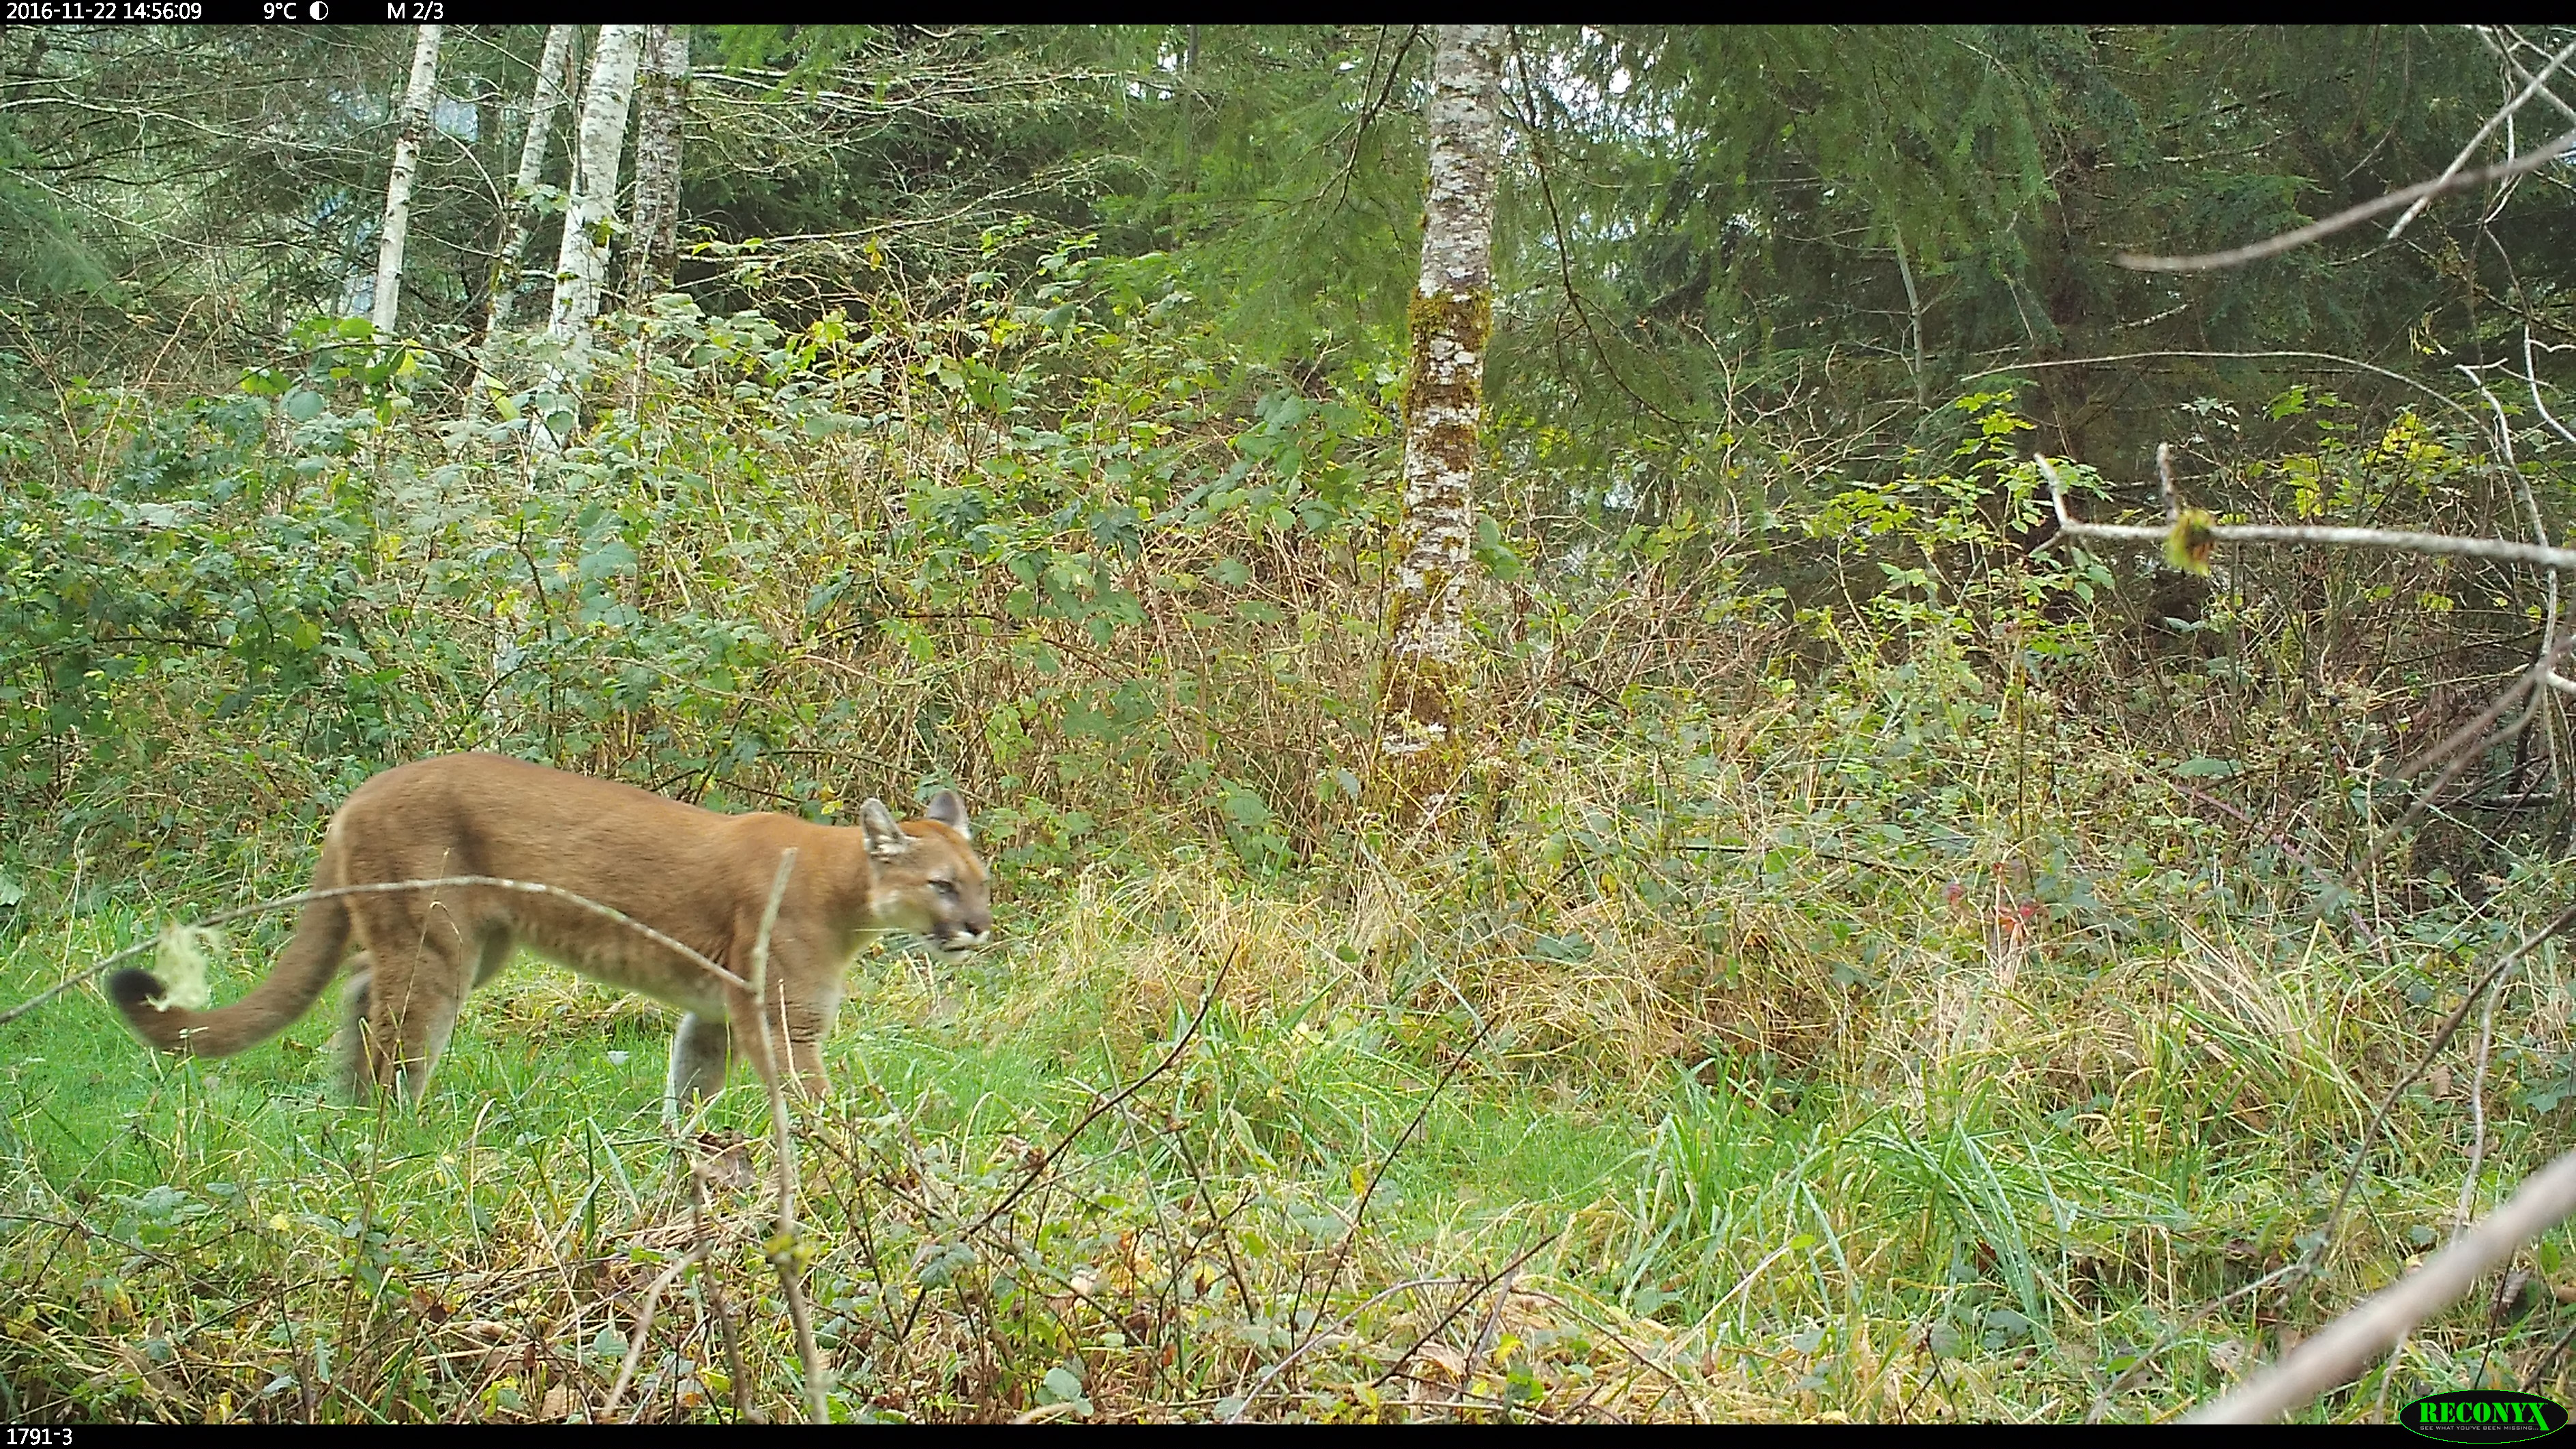 #30: Eastern Cougars? How to Know if a Species is Really There